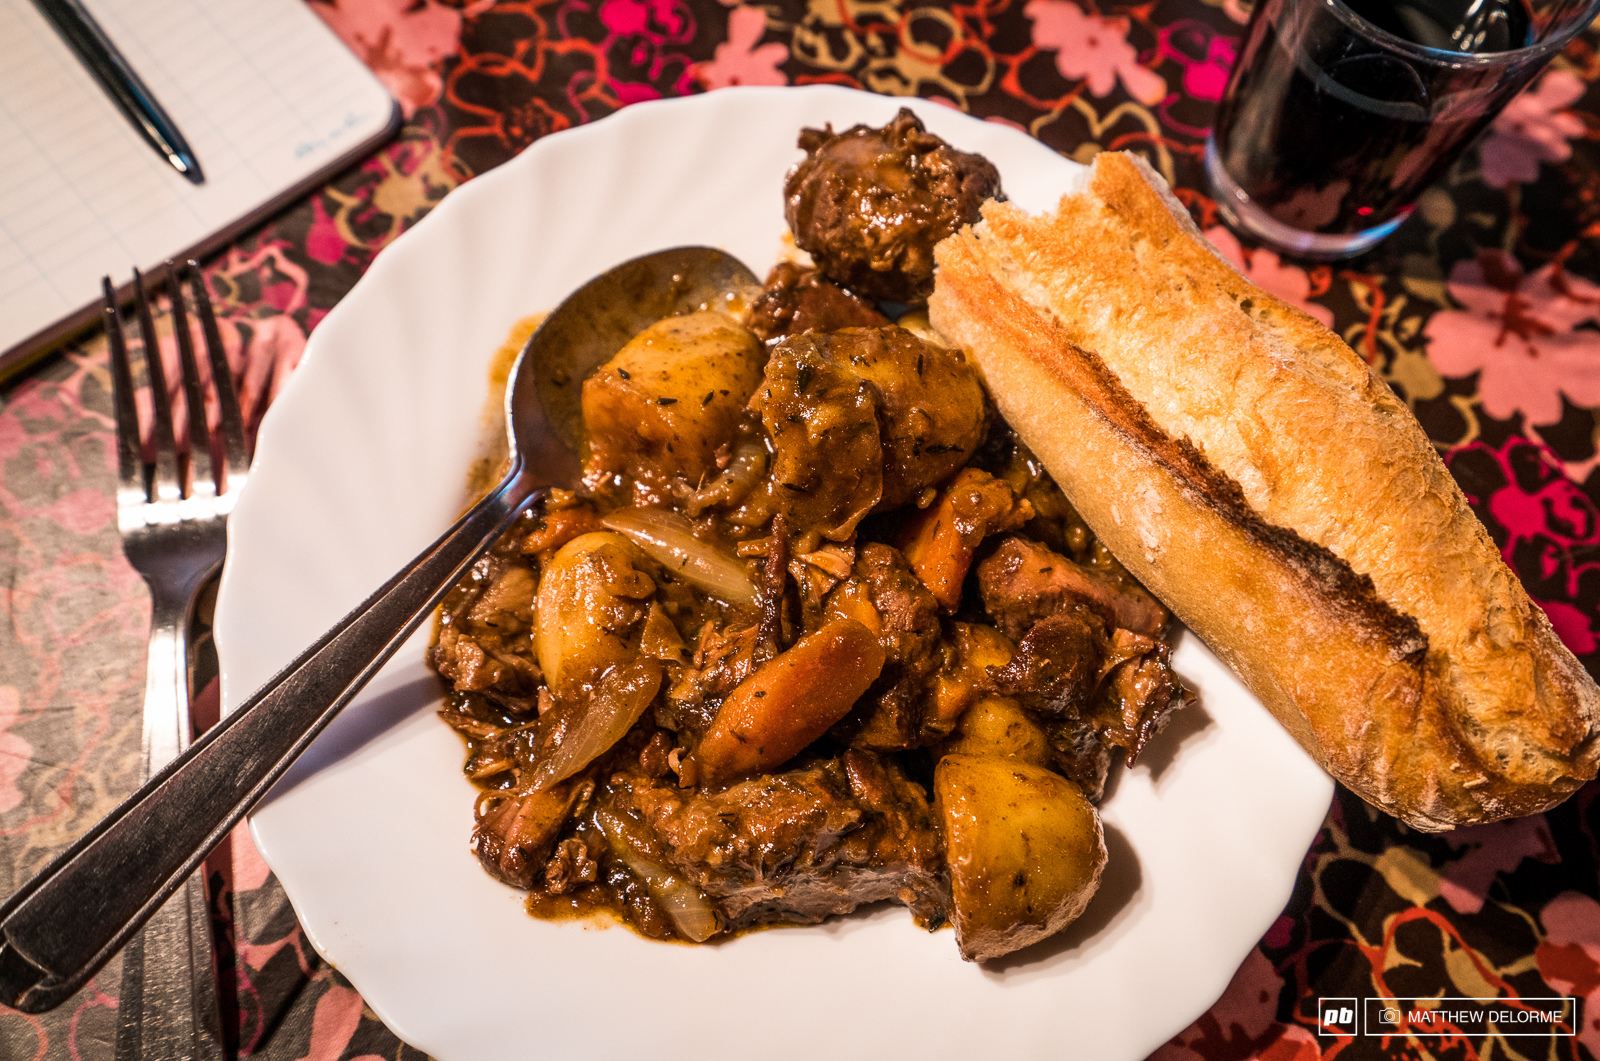 After a long day out in the rain a hearty country meal is the perfect way to warm up.